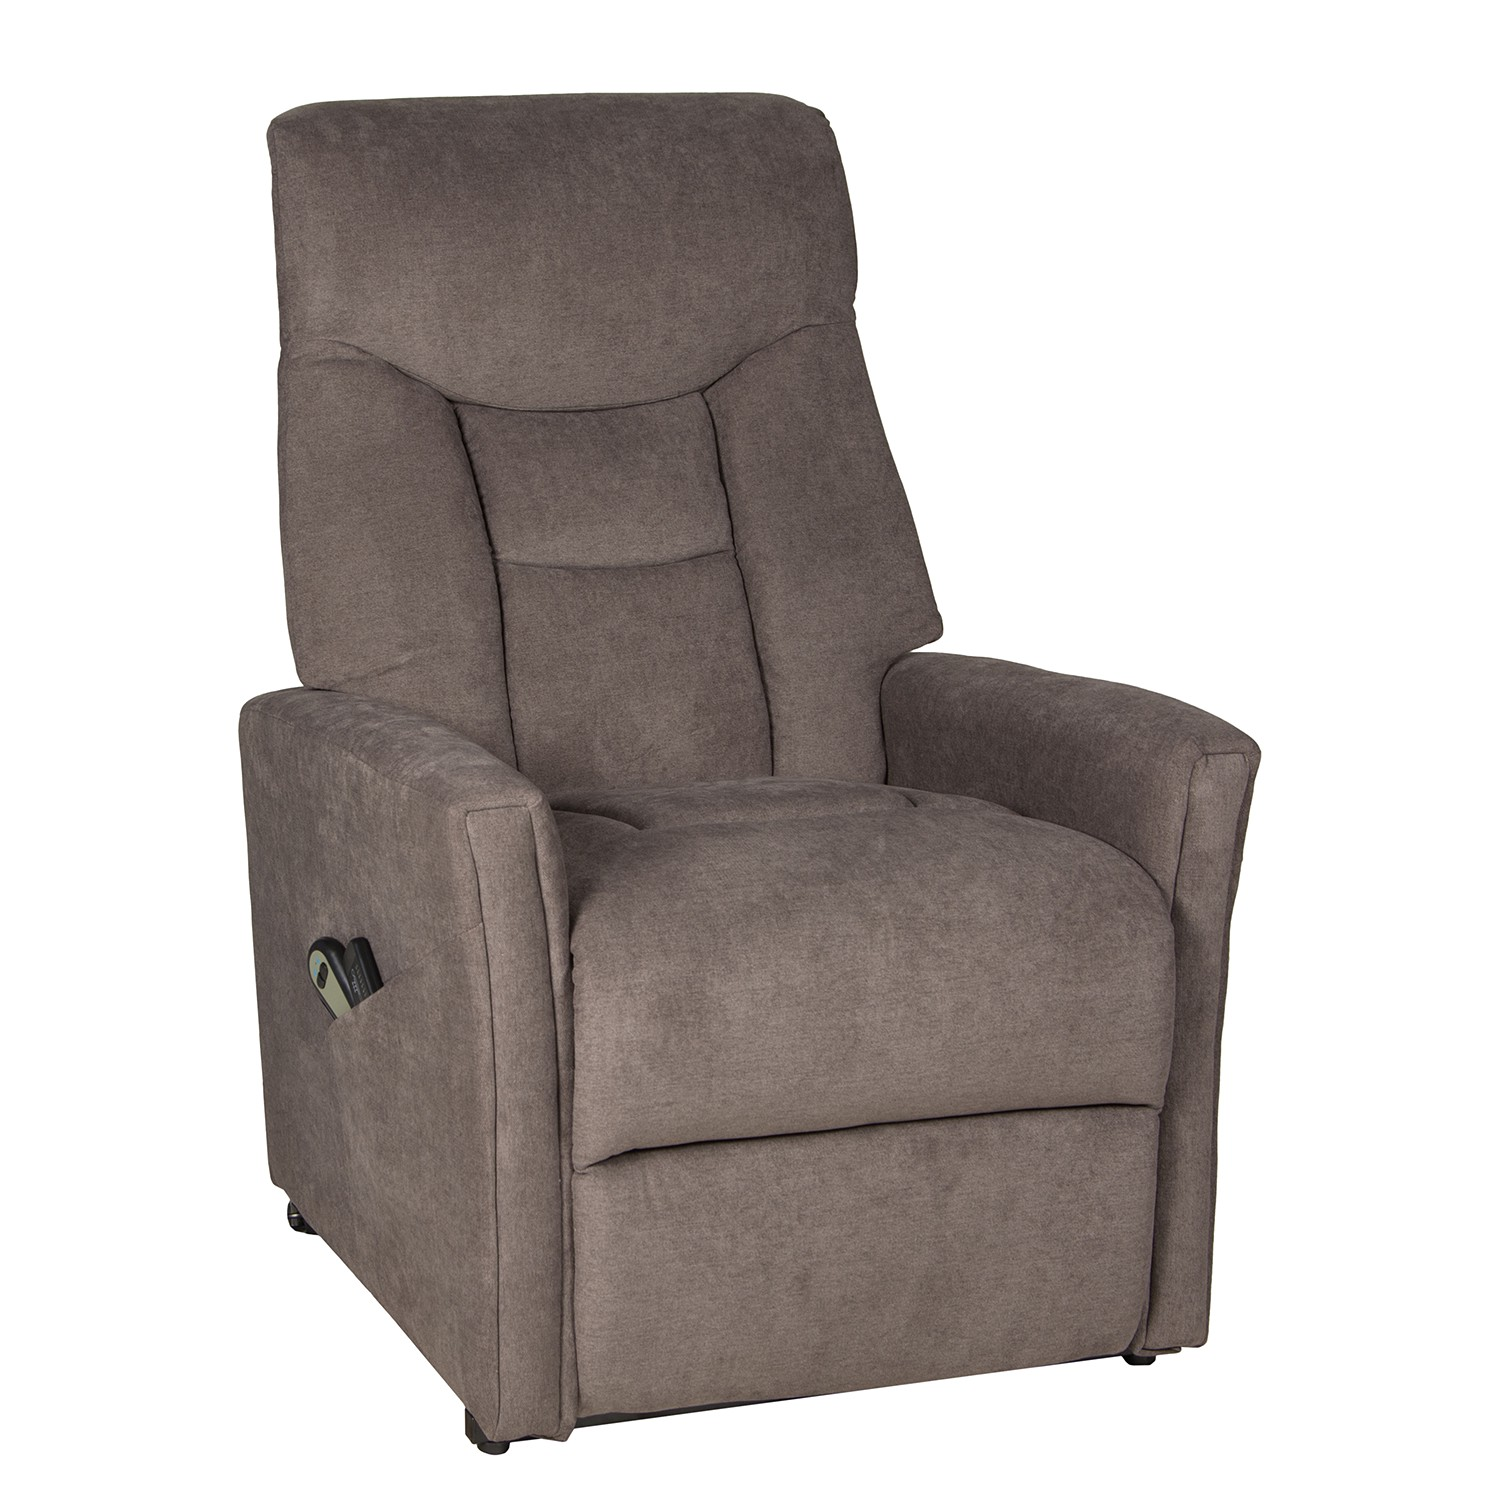 home24 Duo Collection Relaxsessel Lozari Taupe Microfaser mit Relaxfunktion/Massagefunktion/Aufstehhilfe 80x116x86 cm (BxHxT)